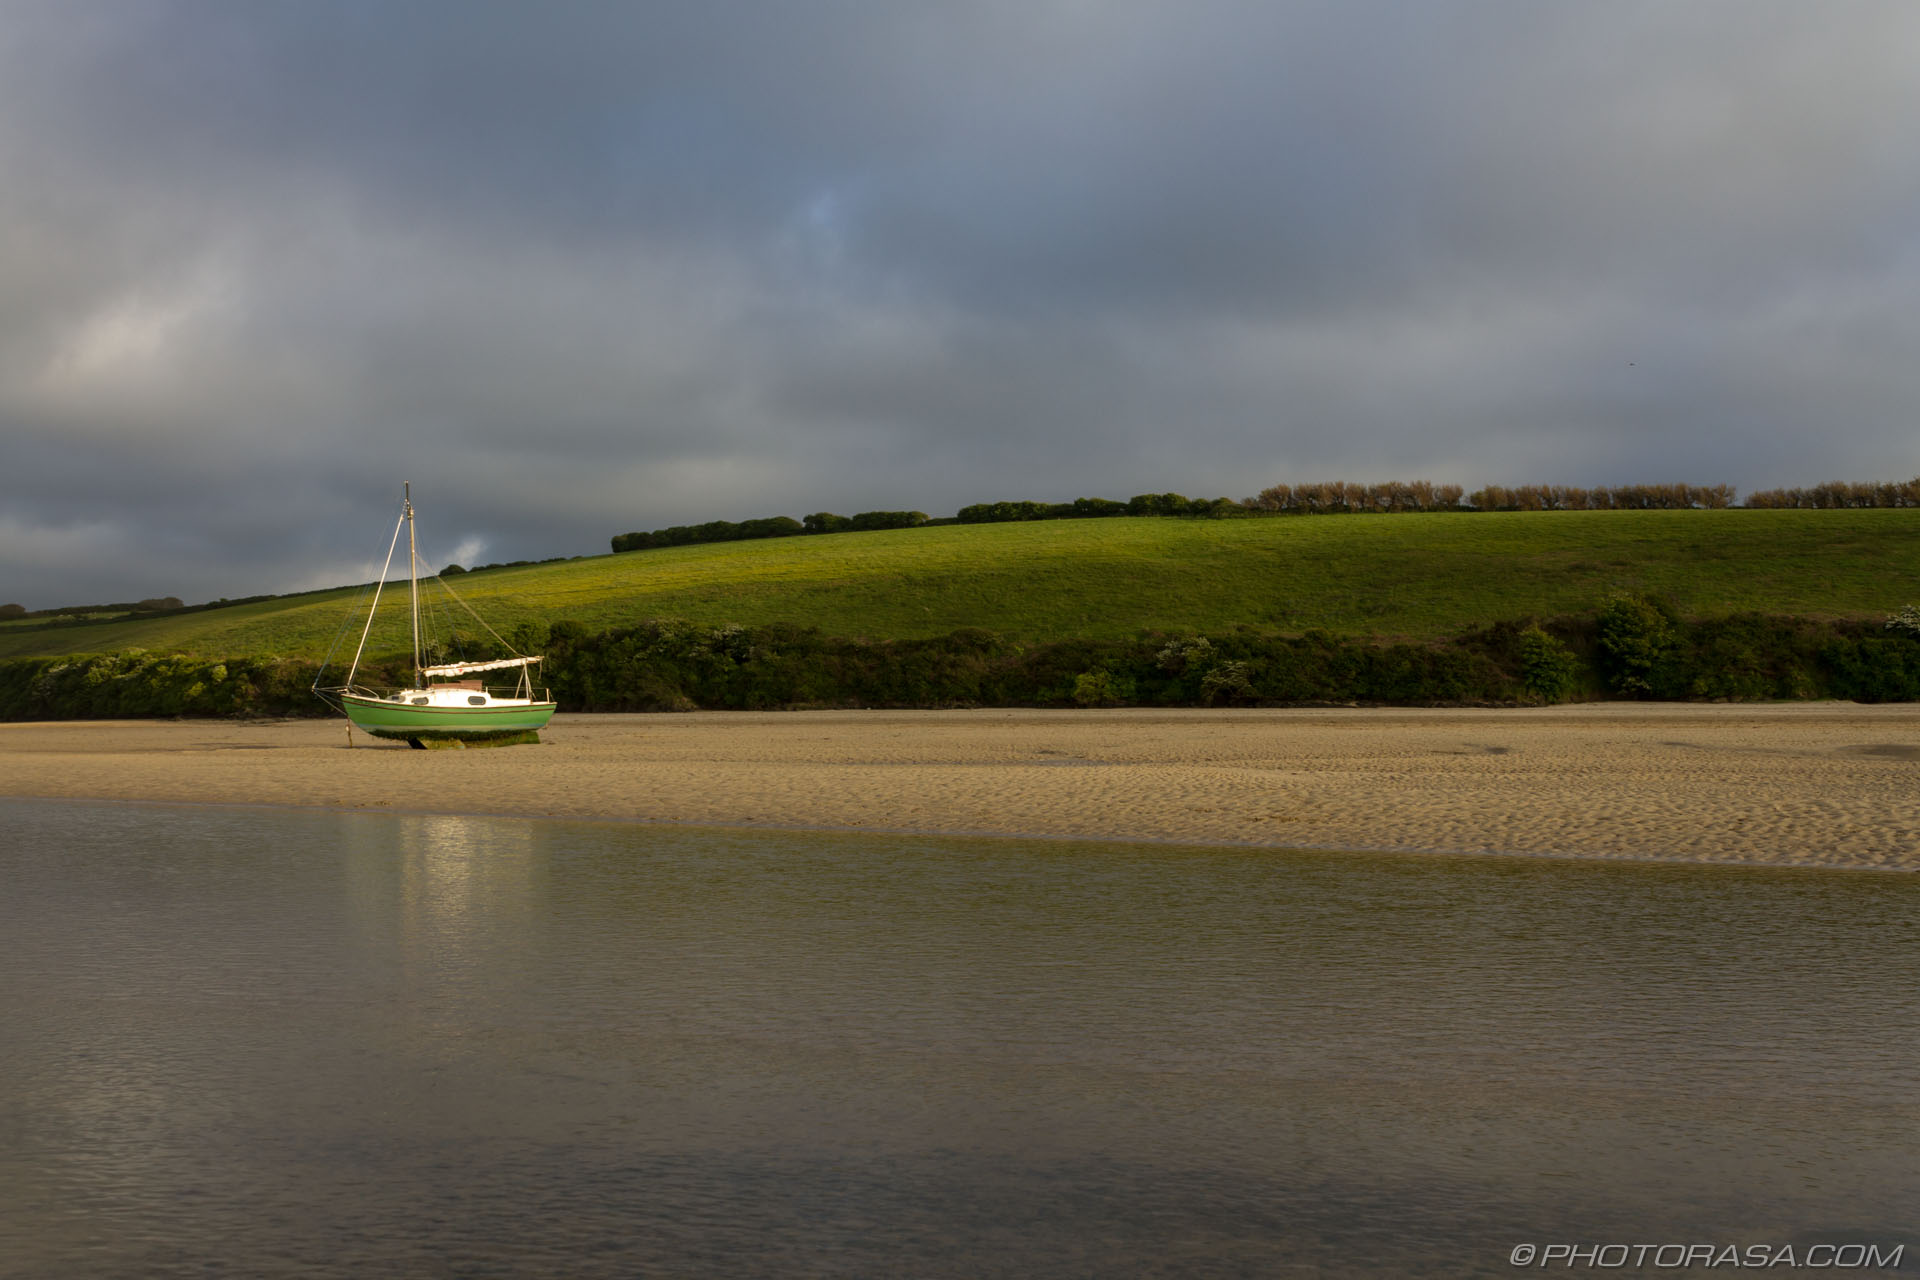 https://photorasa.com/newquay/grounded-boat-on-river-gannel-estuary/